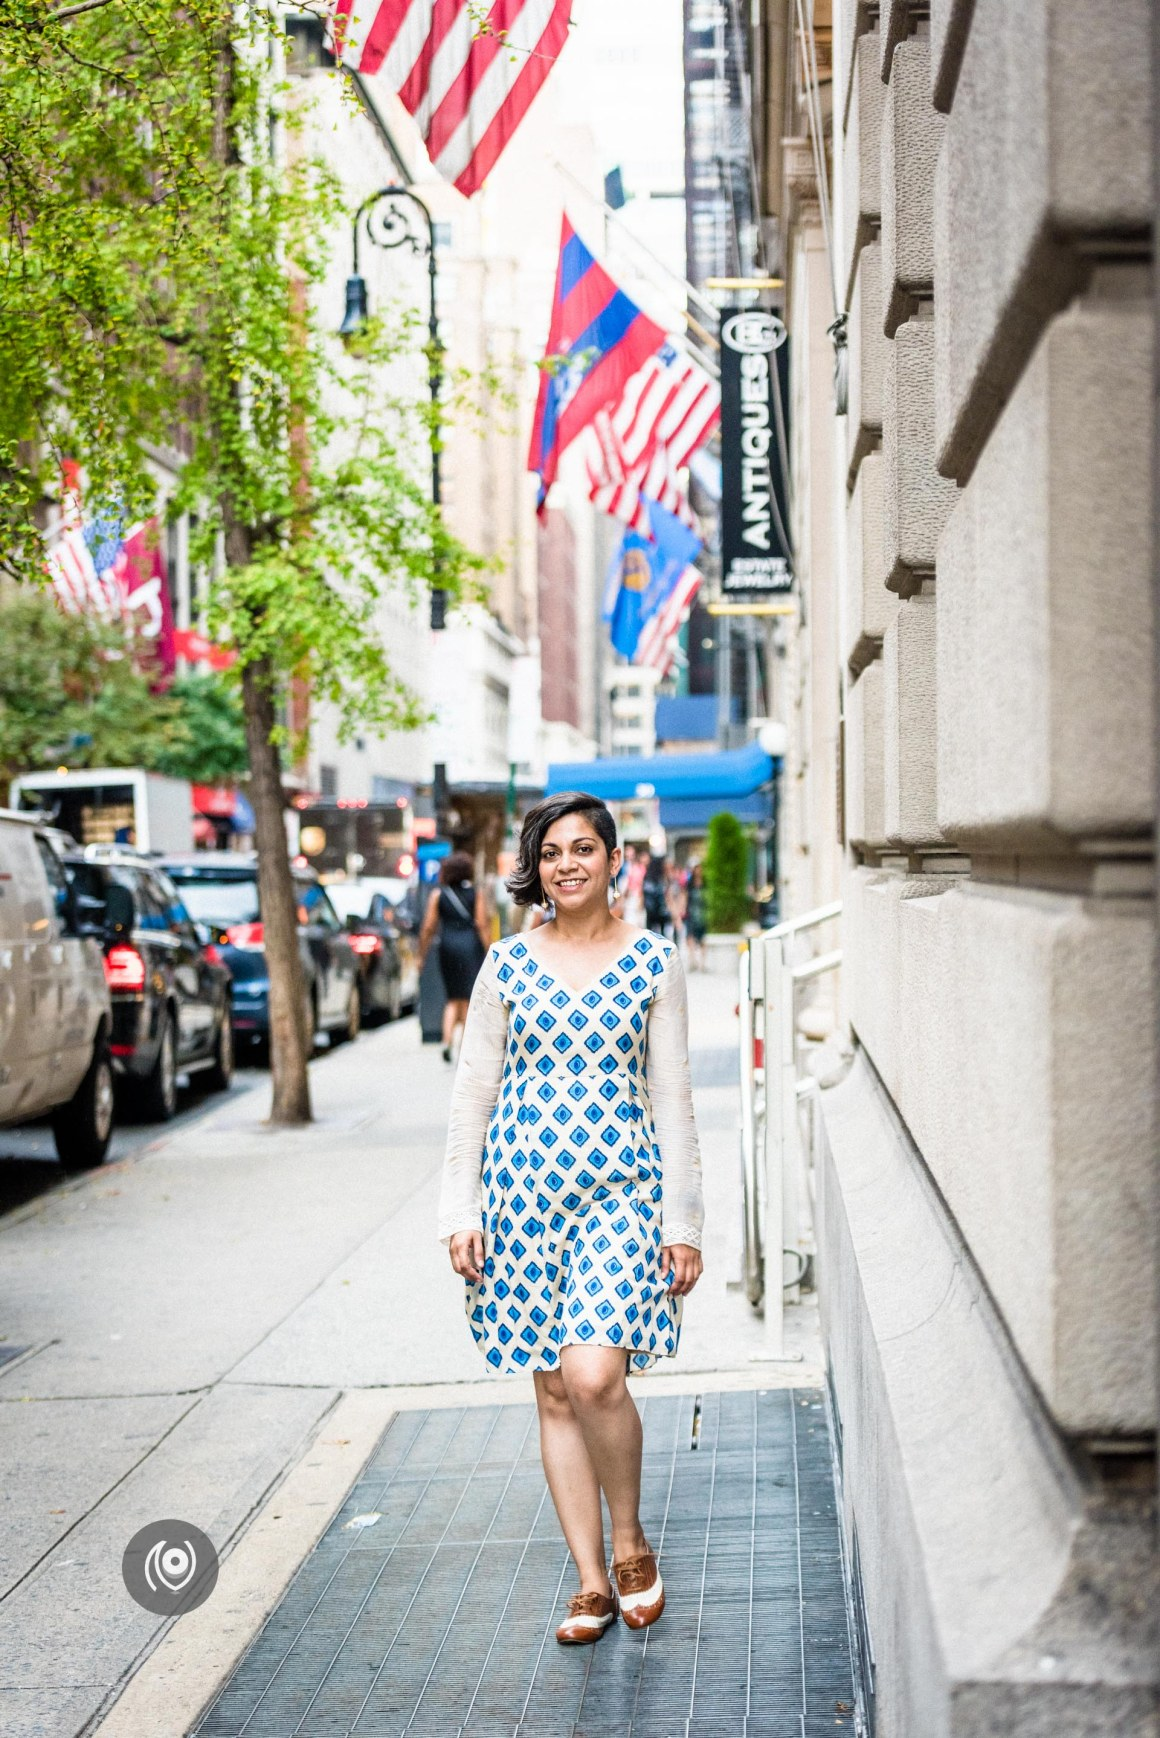 Deepika Govind #CoverUp 55 #EyesForNewYork #REDHUxNYC Naina.co Luxury & Lifestyle, Photographer Storyteller, Blogger